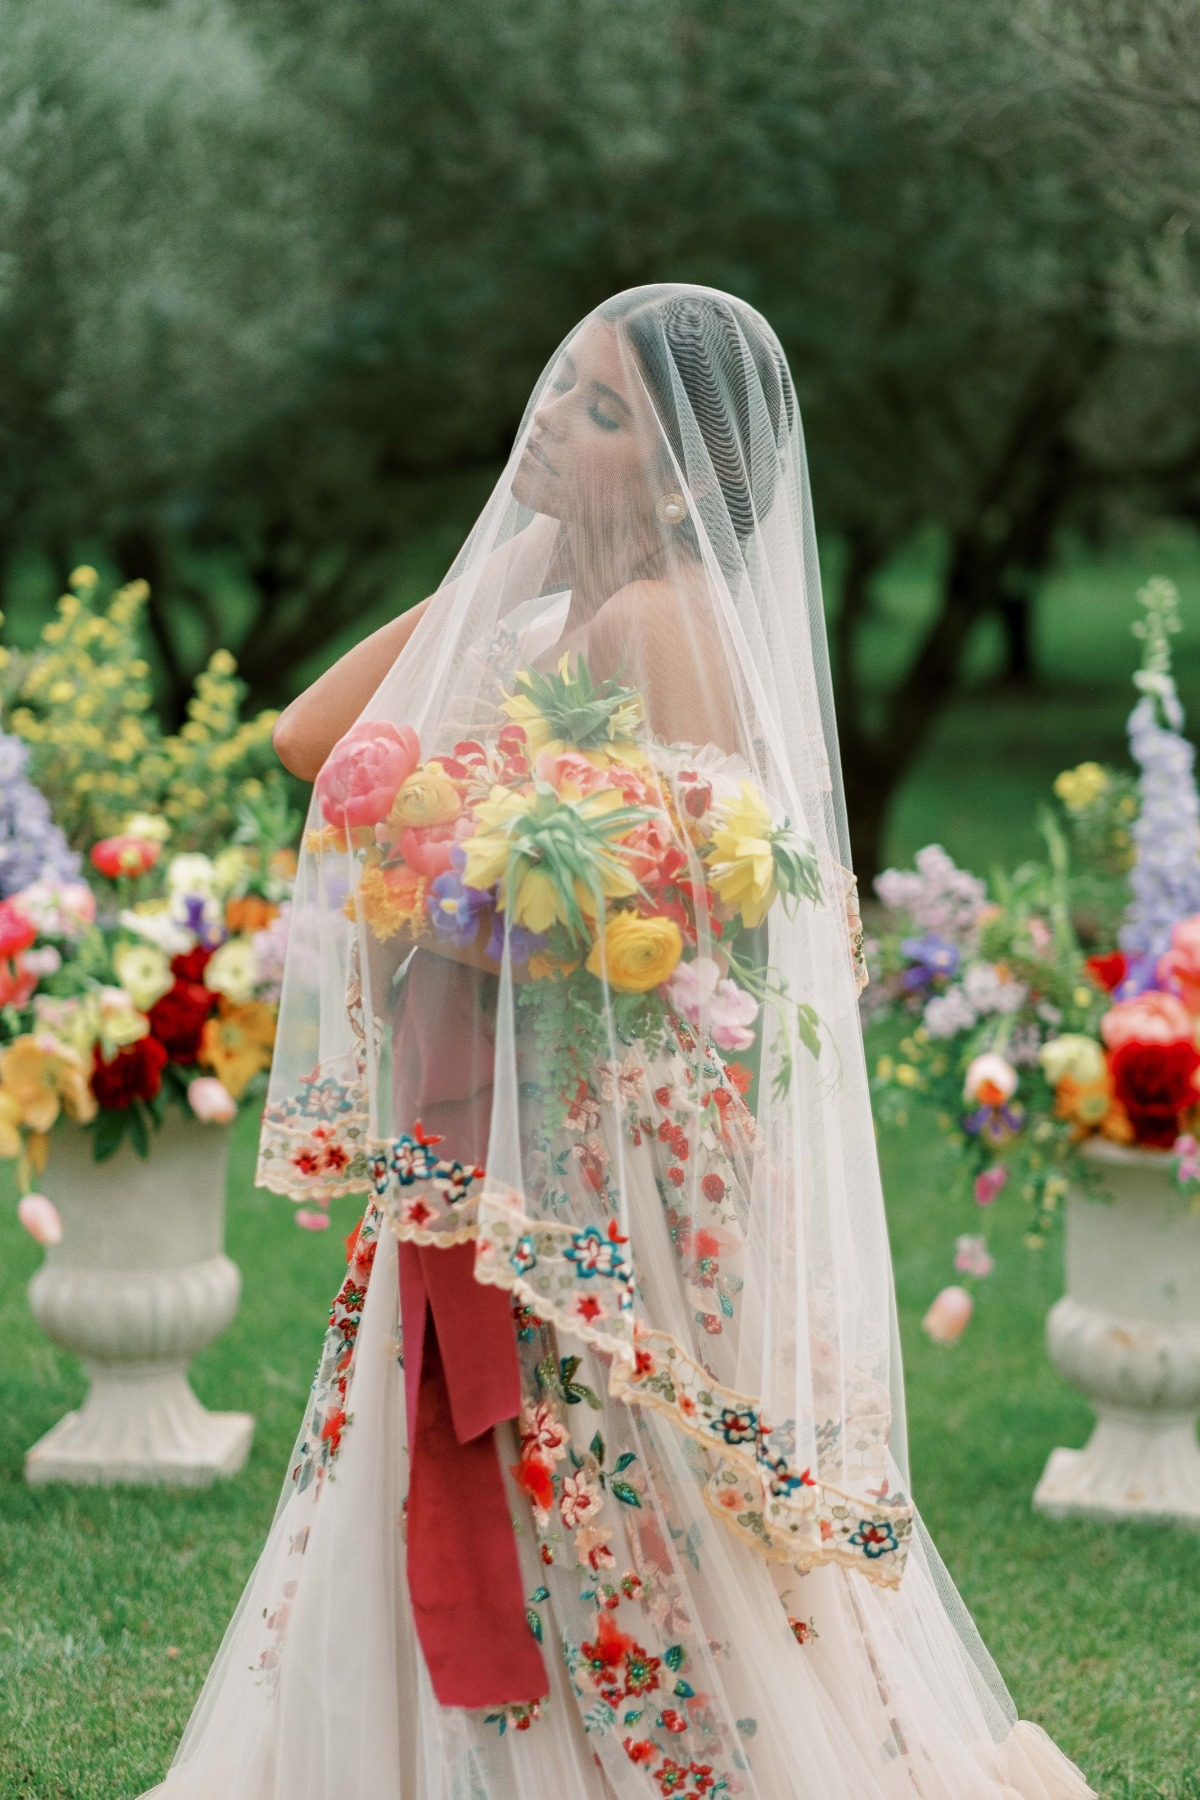 A Multi-Day Destination Wedding Could Actually Save You Money...Here's How